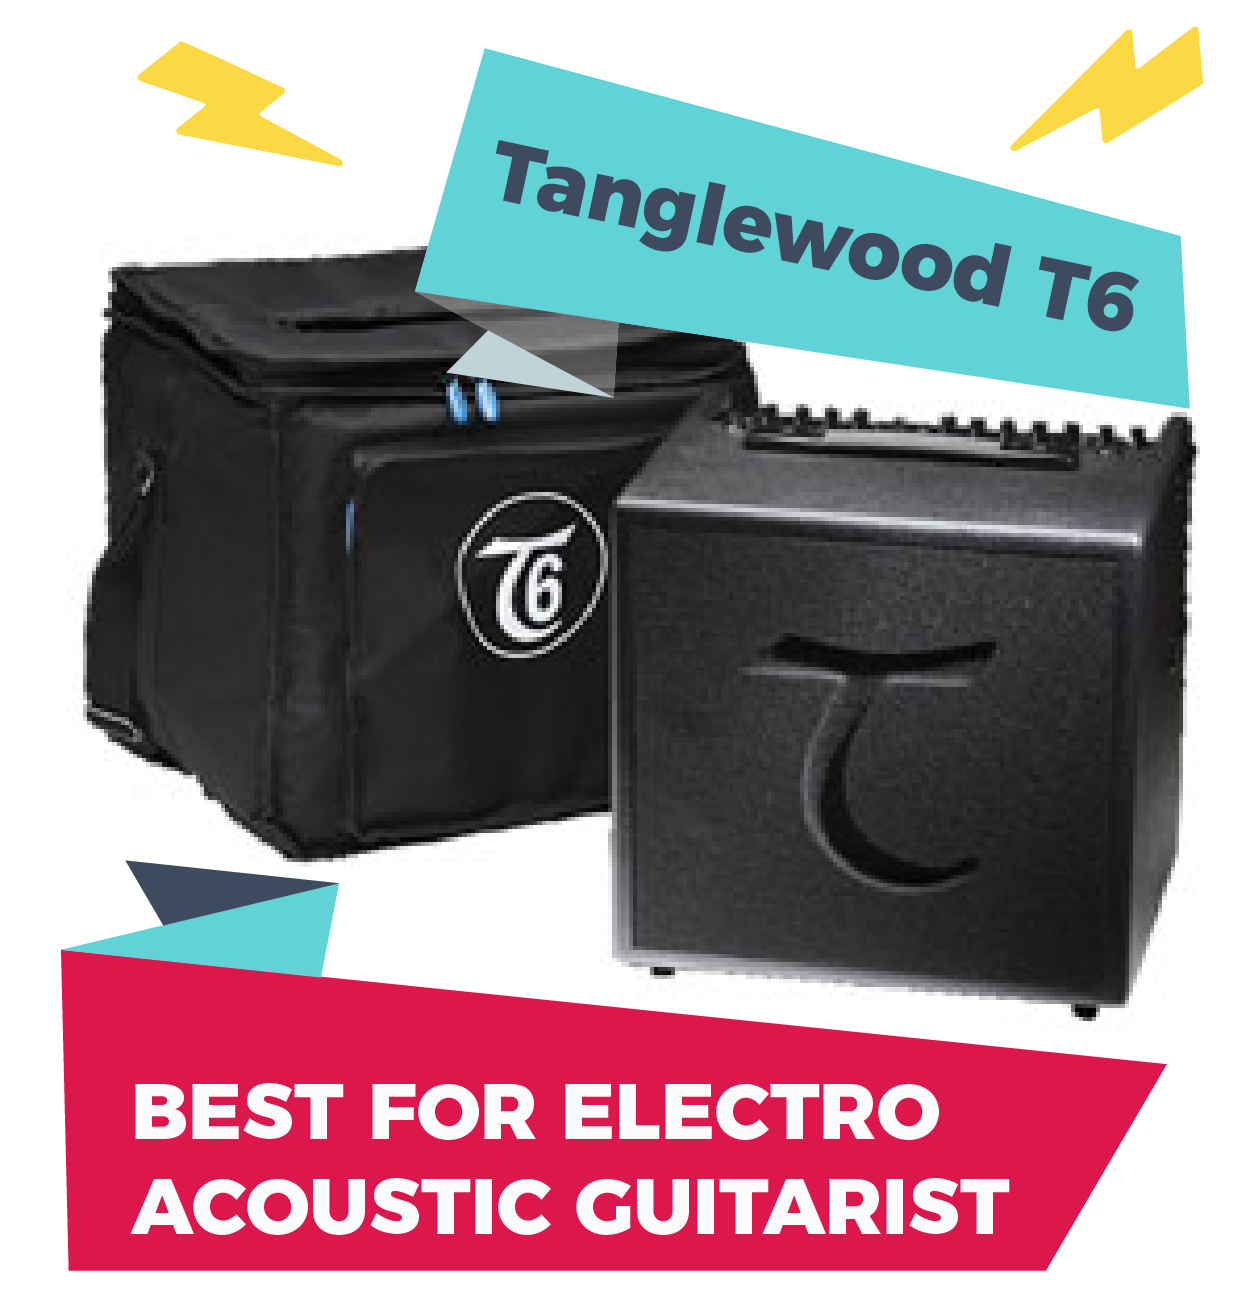 Tanglewood T6, one of the best amps for busking for electro-acoustic guitarists